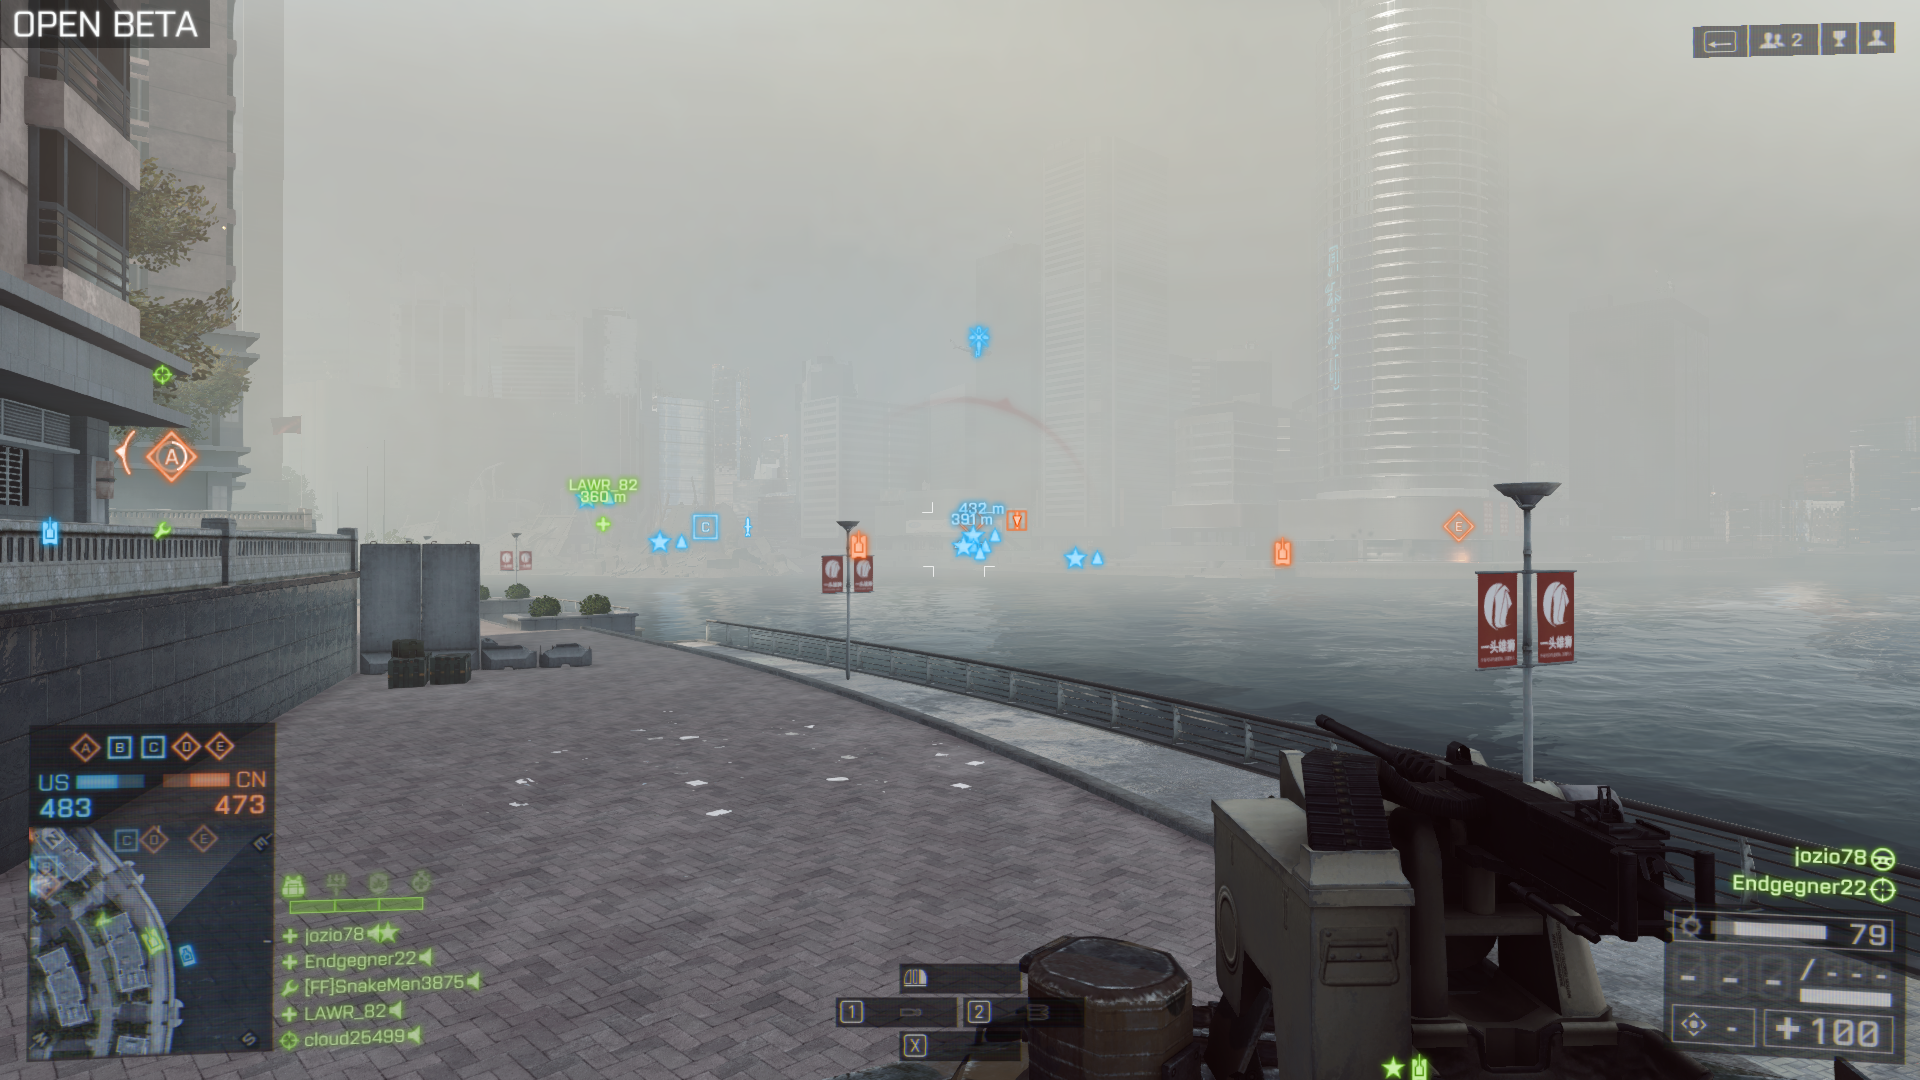 http://endgegner.fightercom.de/BF4_Screenshot/Battlefield4OpenBeta07.png